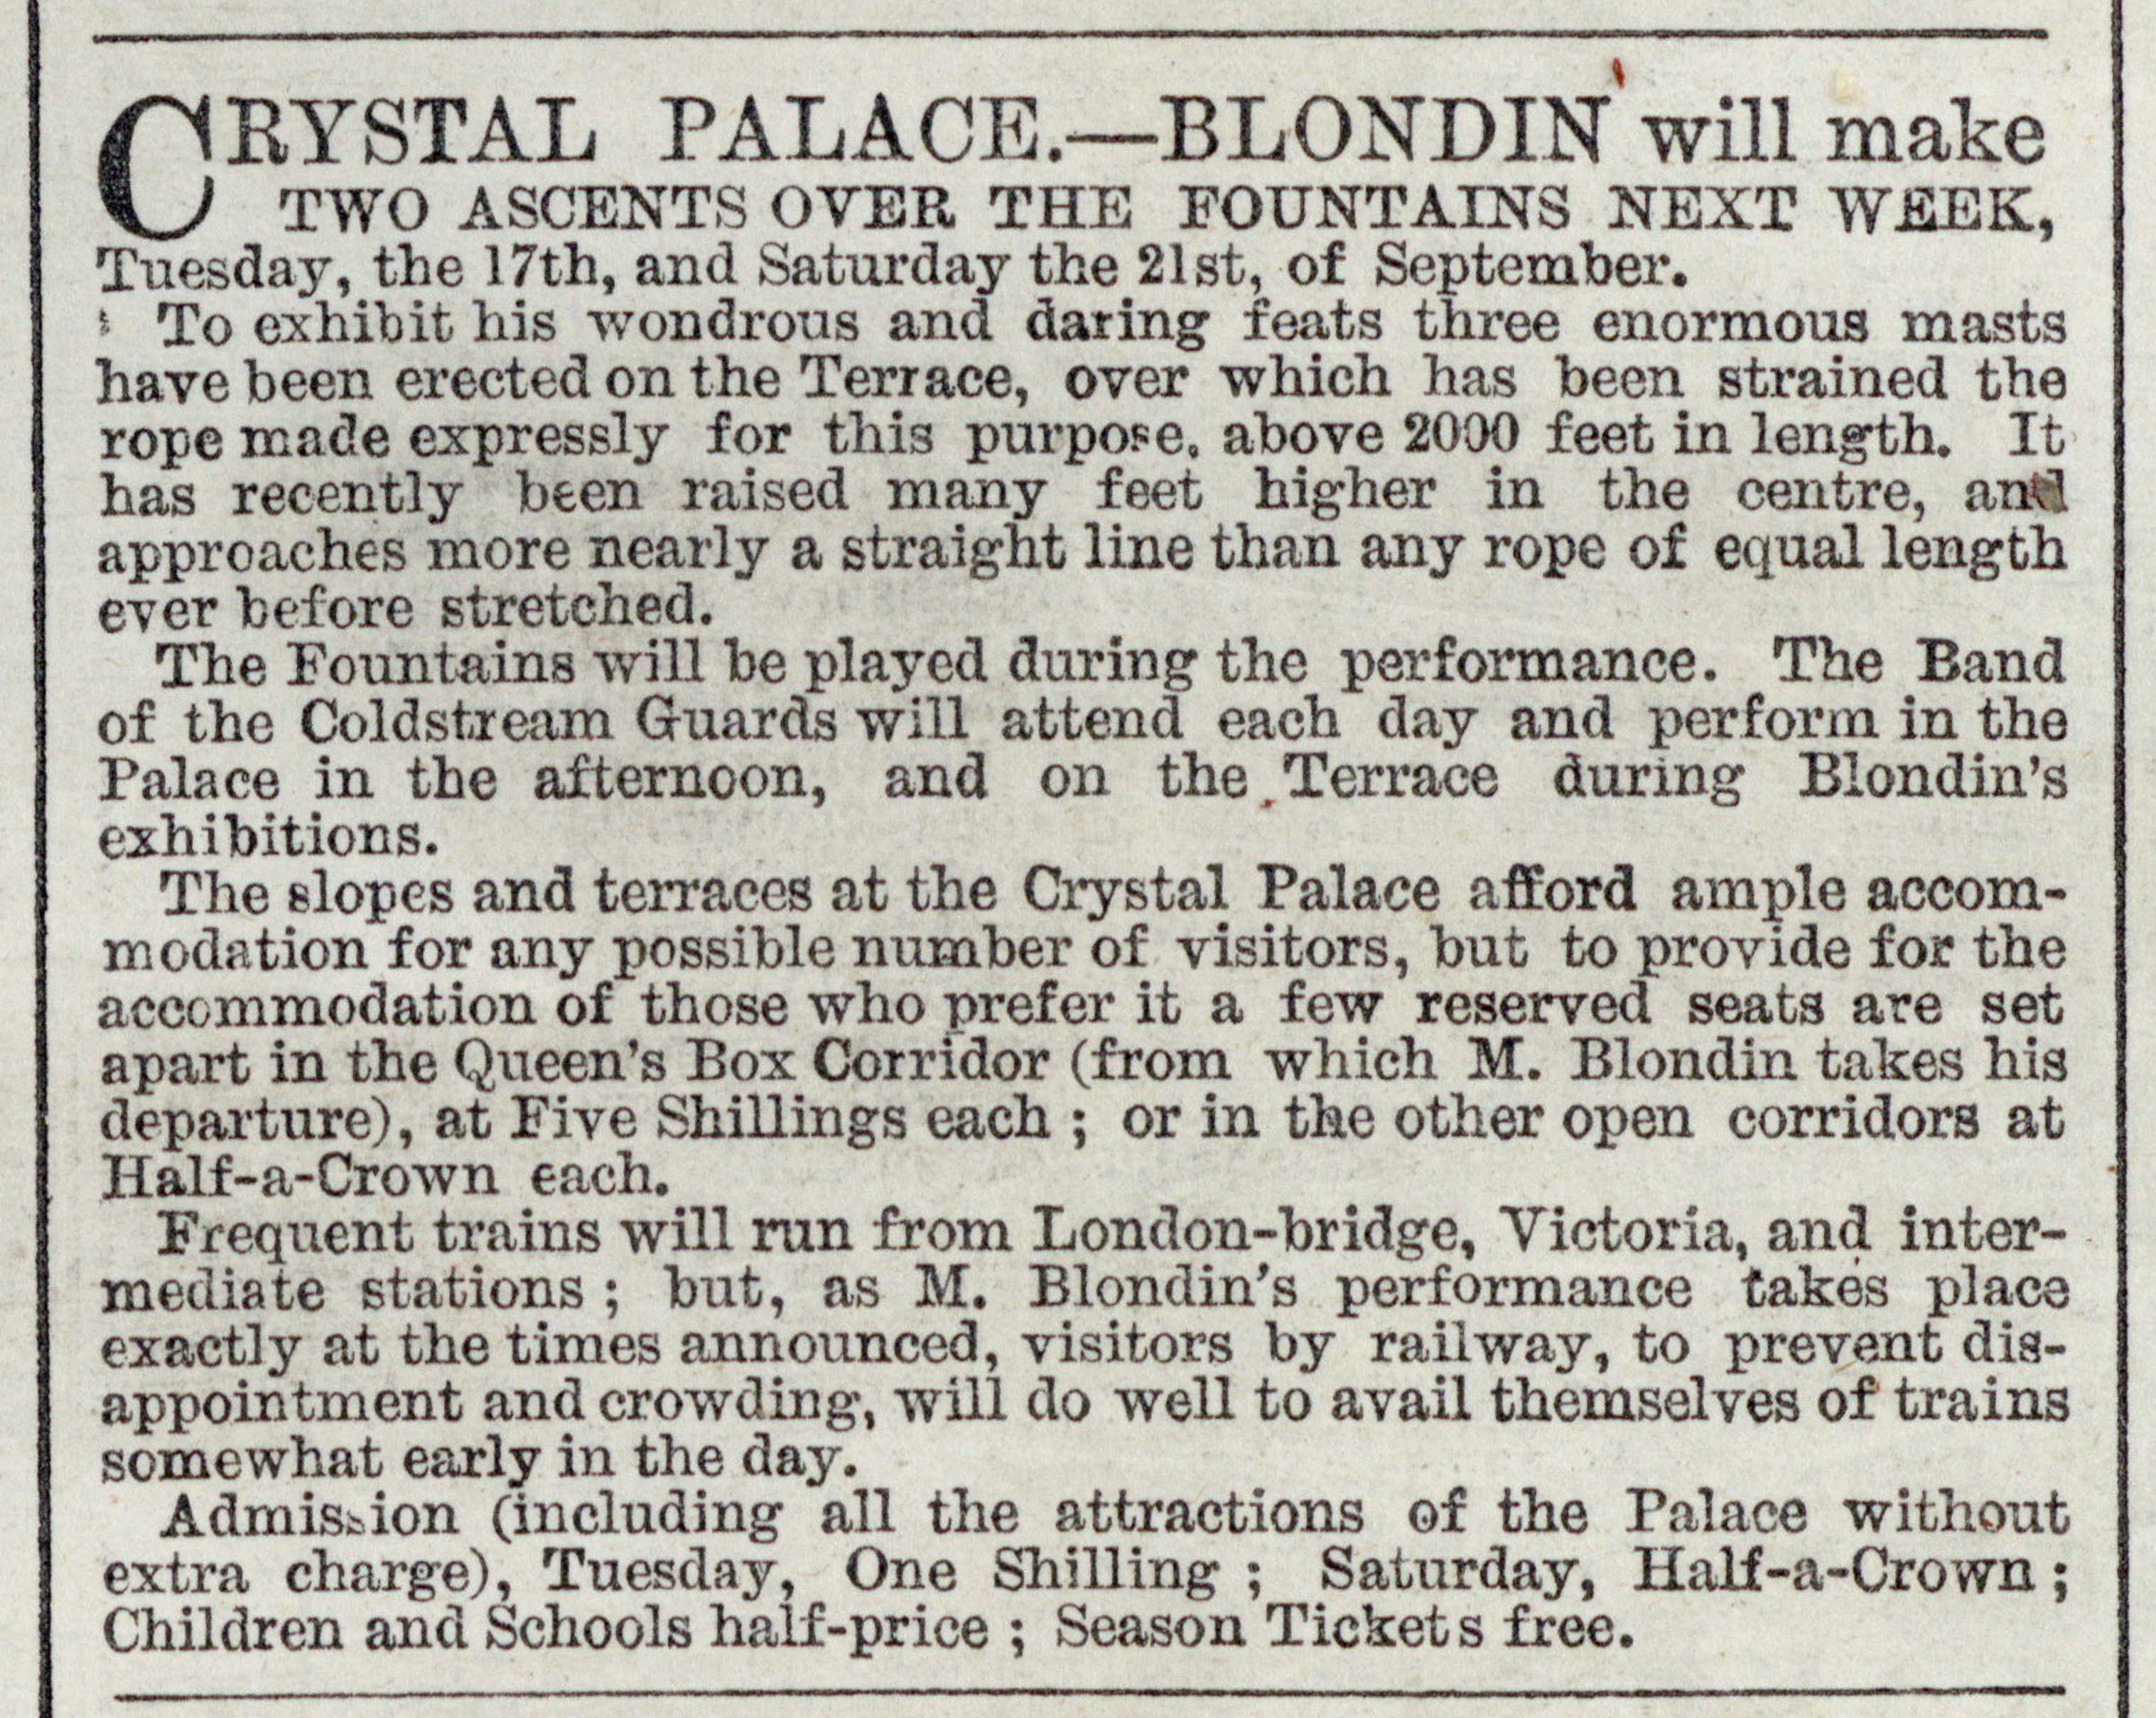 Advertisement for Blondin's shows at the Crystal Palace from: Illustrated London News, September 14, 1861